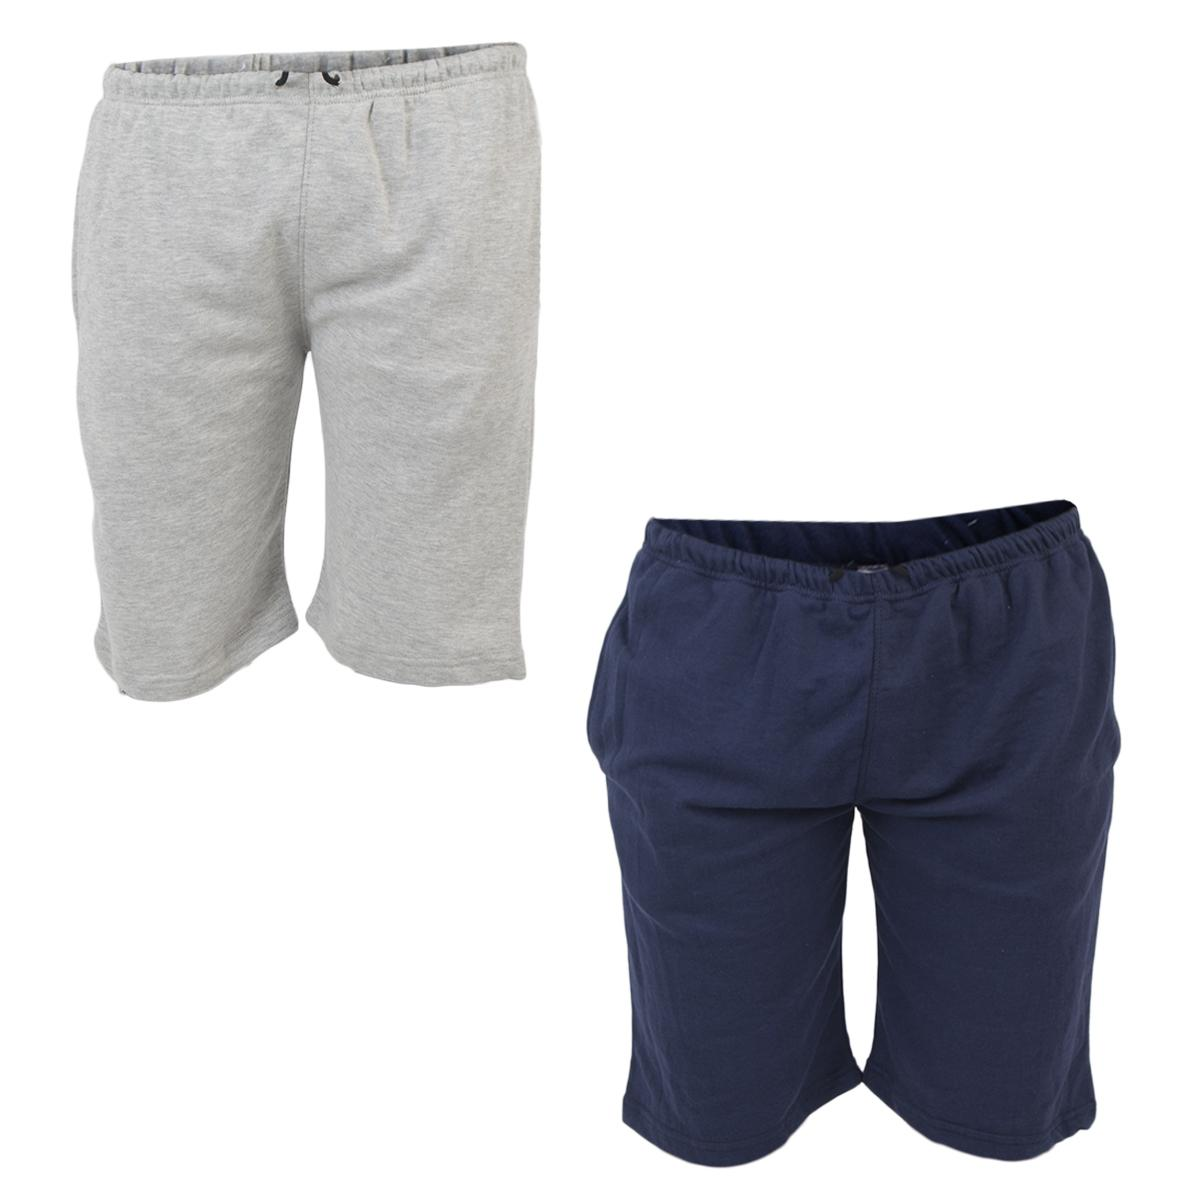 Daraz Select Heather Grey & Navy Blue French Terry Shorts for Men